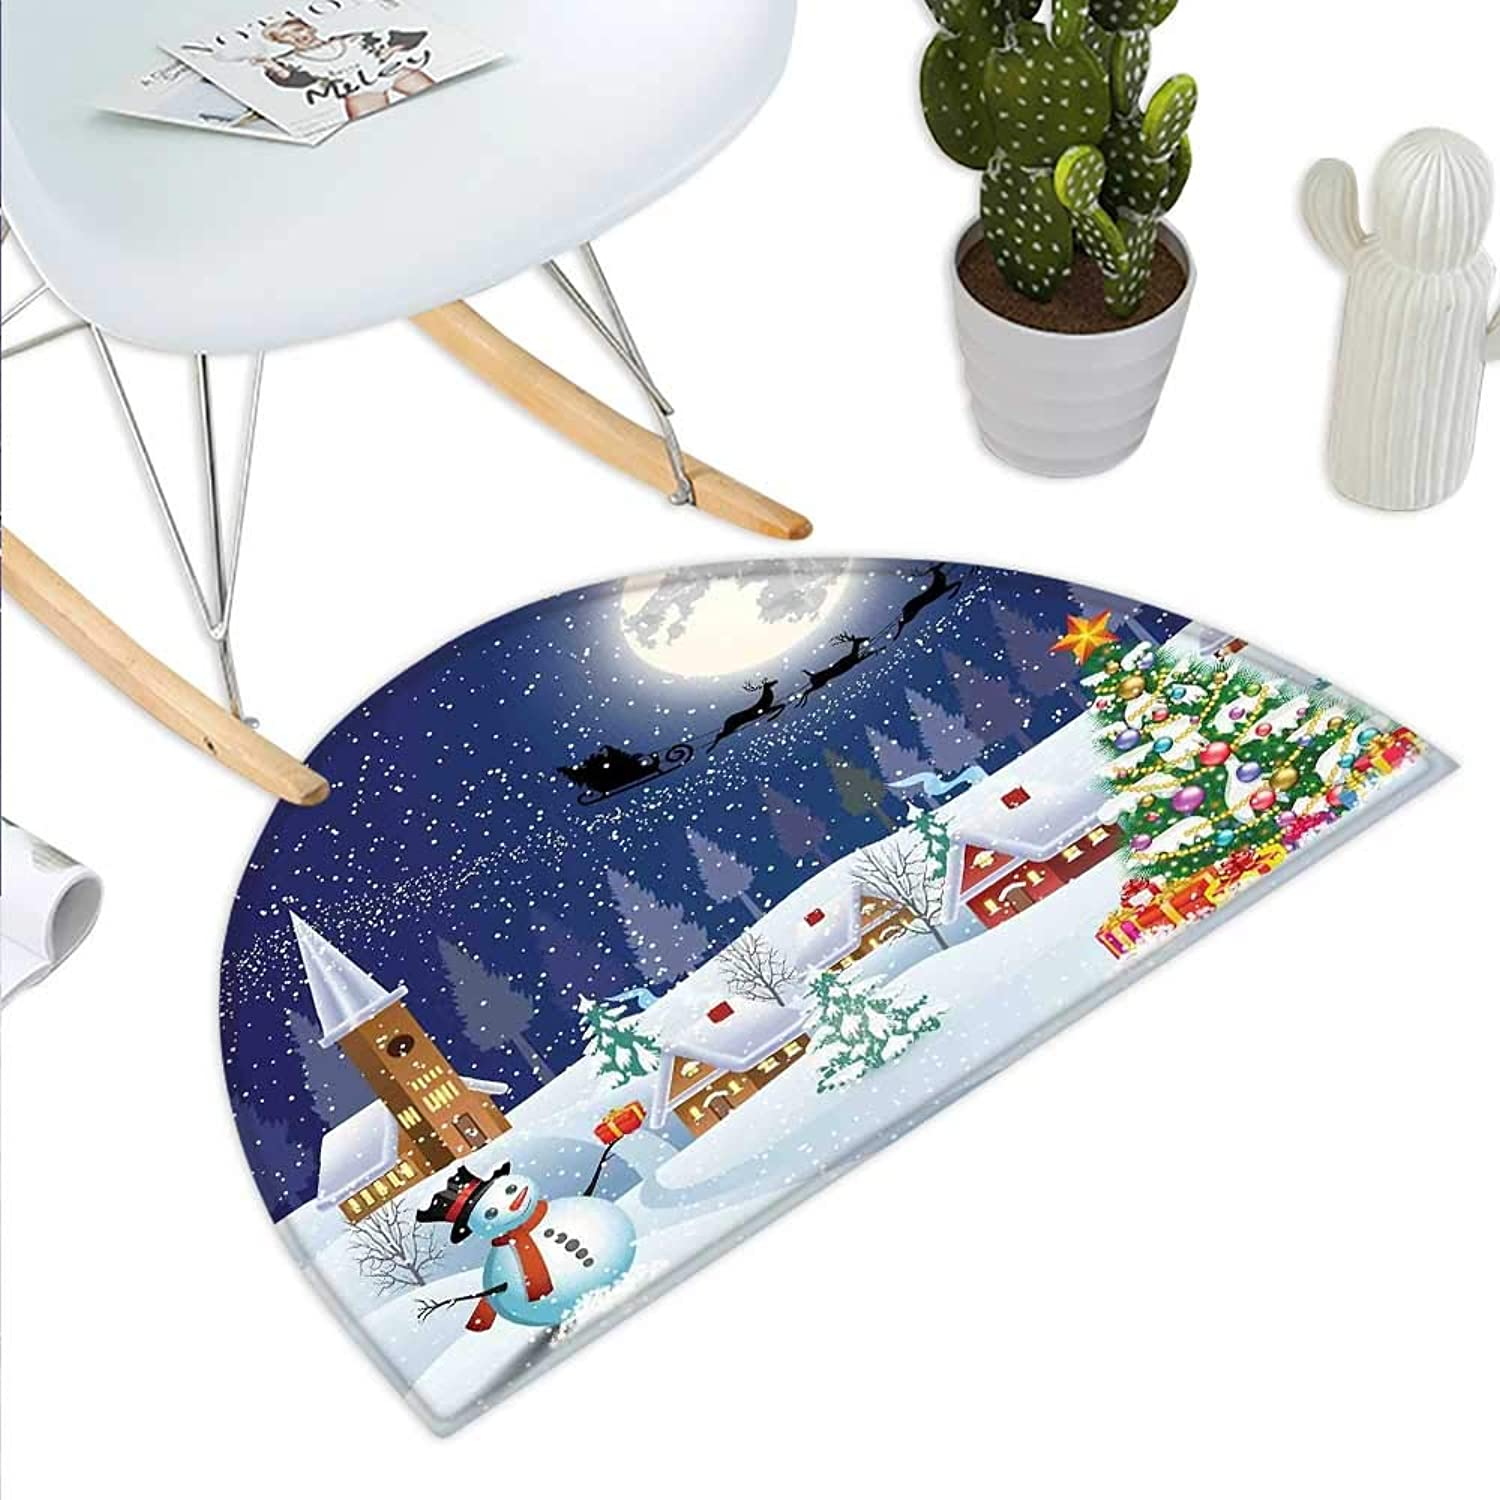 Christmas Semicircle Doormat Winter Season Snowman Xmas Tree Santa Sleigh Moon Present Boxes Snow and Stars Halfmoon doormats H 43.3  xD 64.9  bluee White